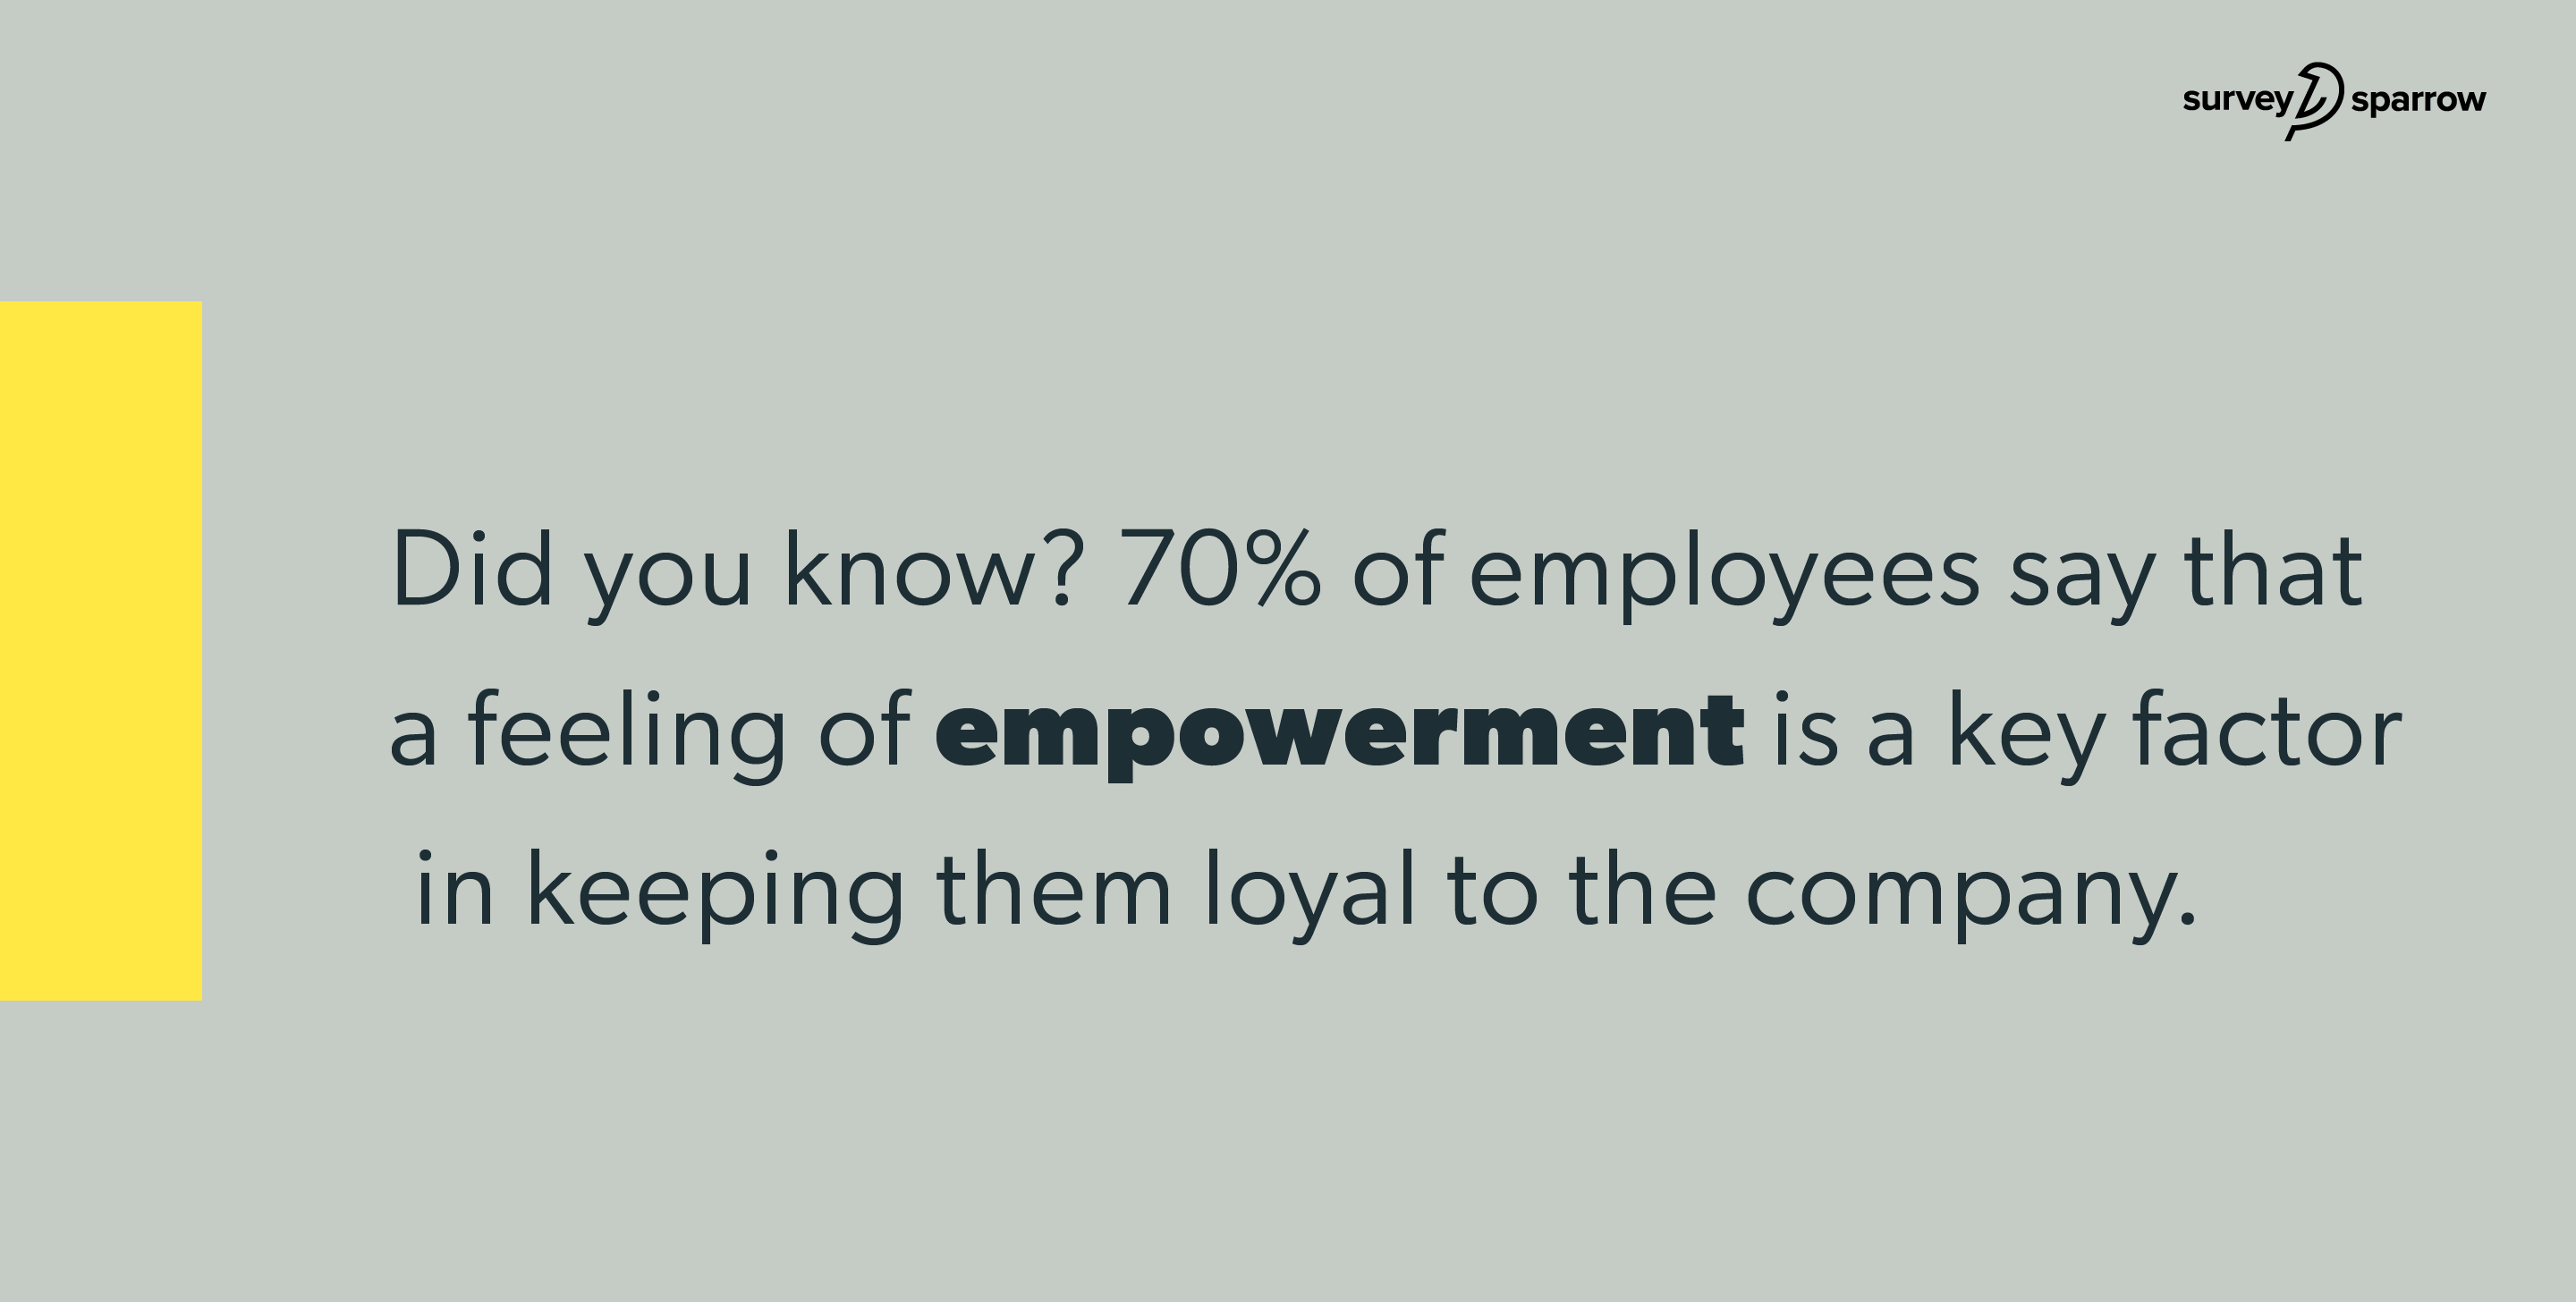 A feeling of empowerment is a key factor to improve employee loyalty.